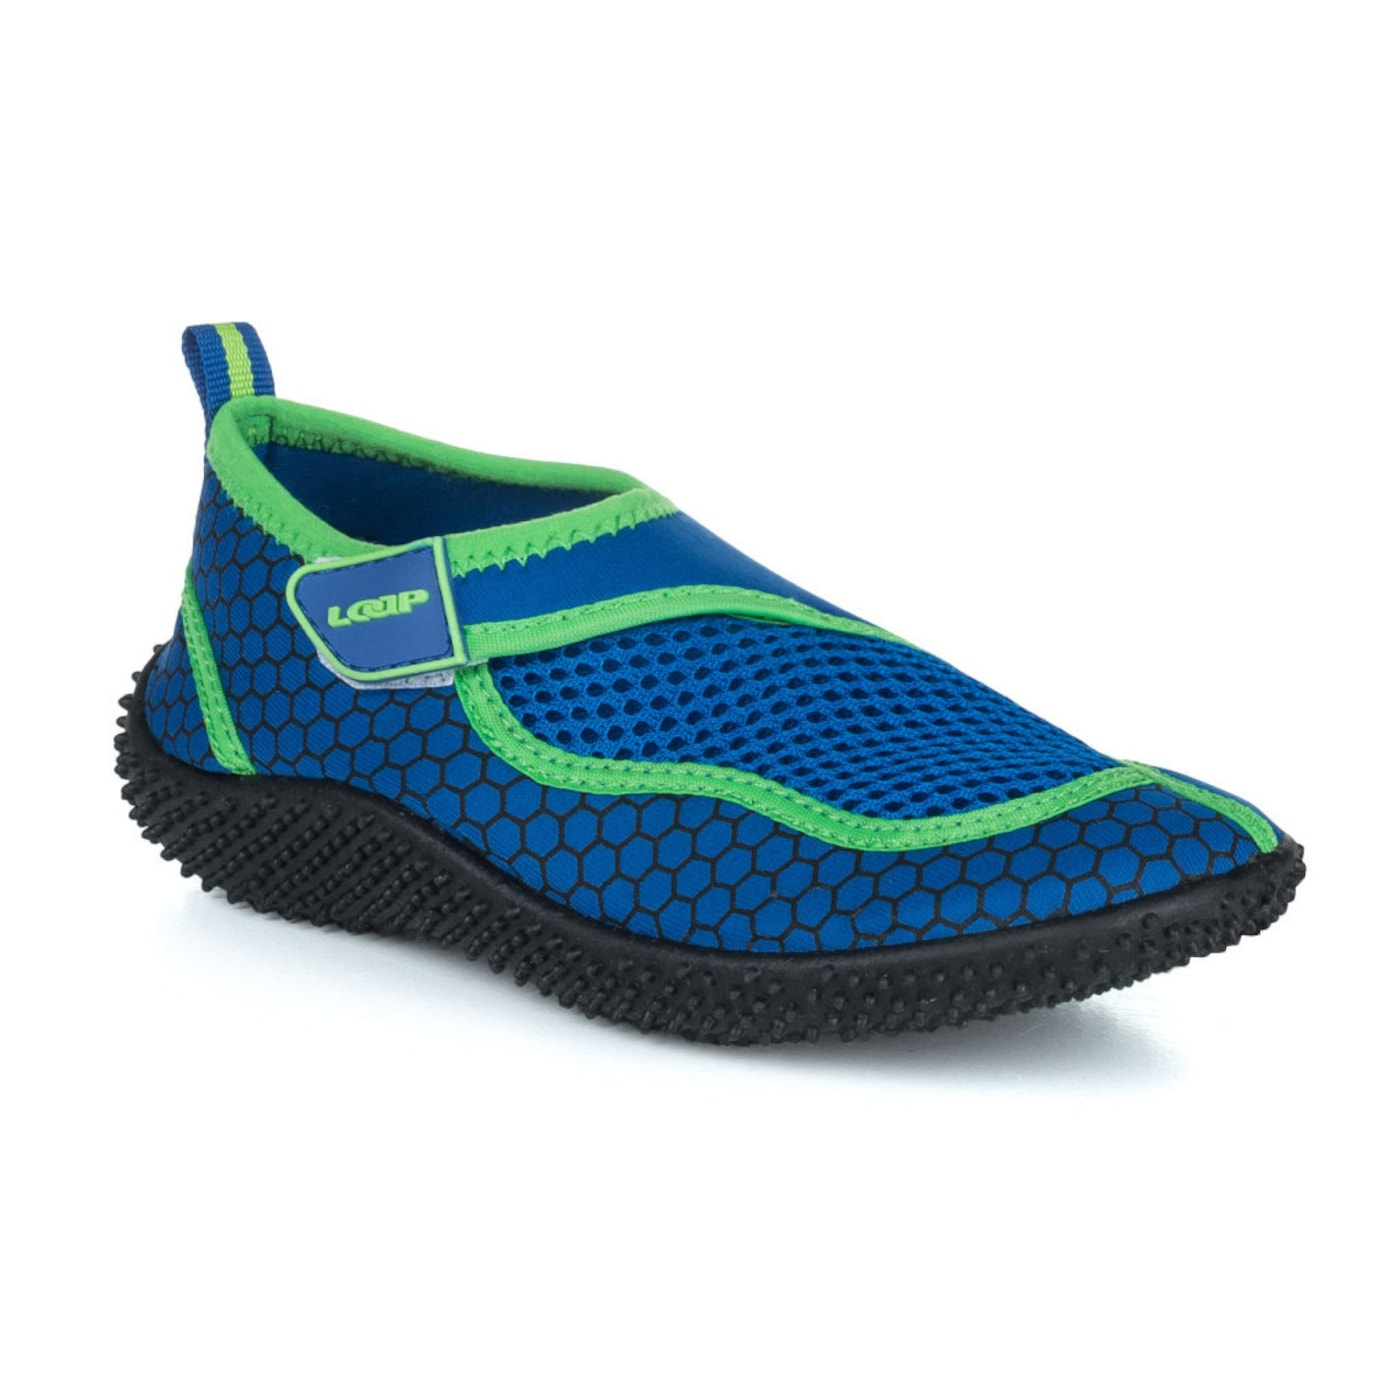 COSMA KID children's water shoes blue